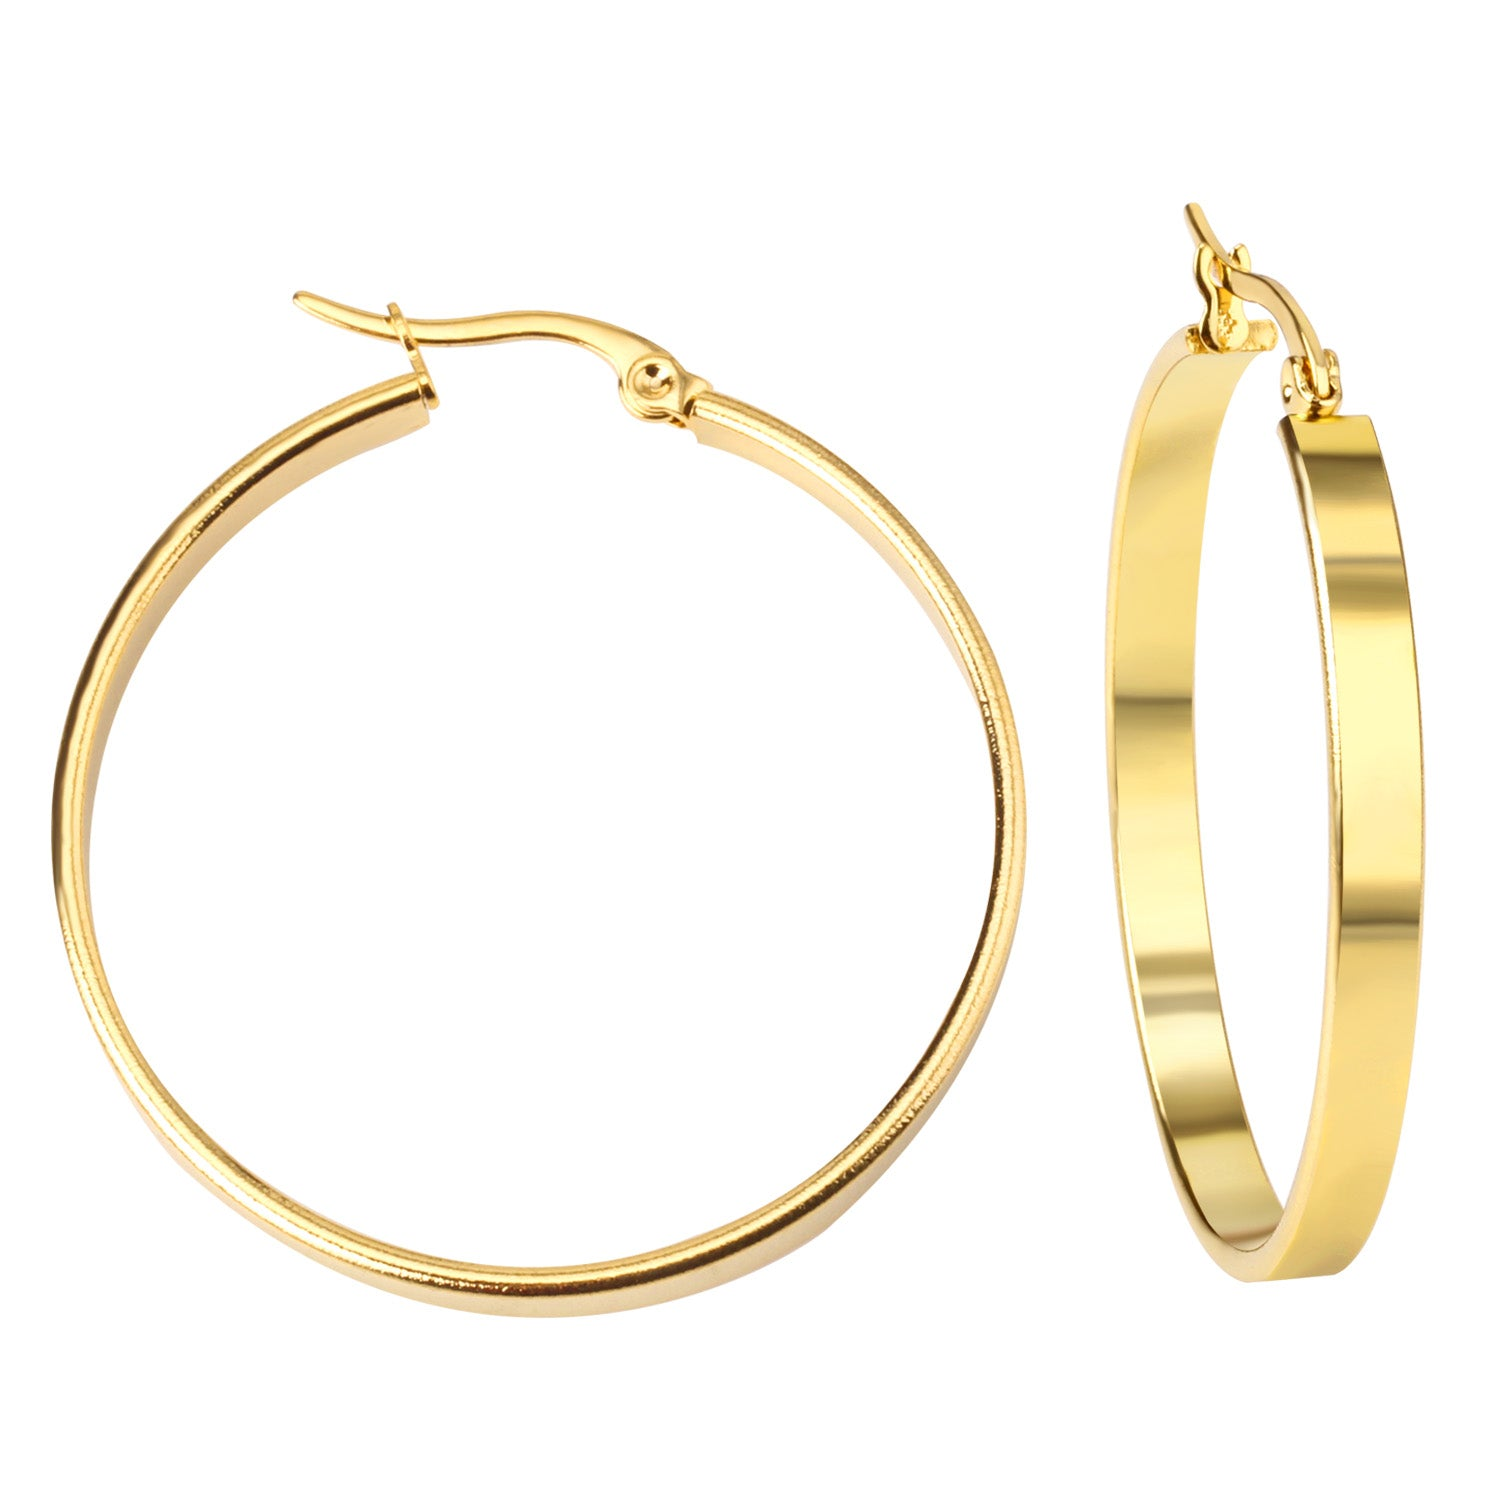 jewellery hoop gold s us earrings mini claire